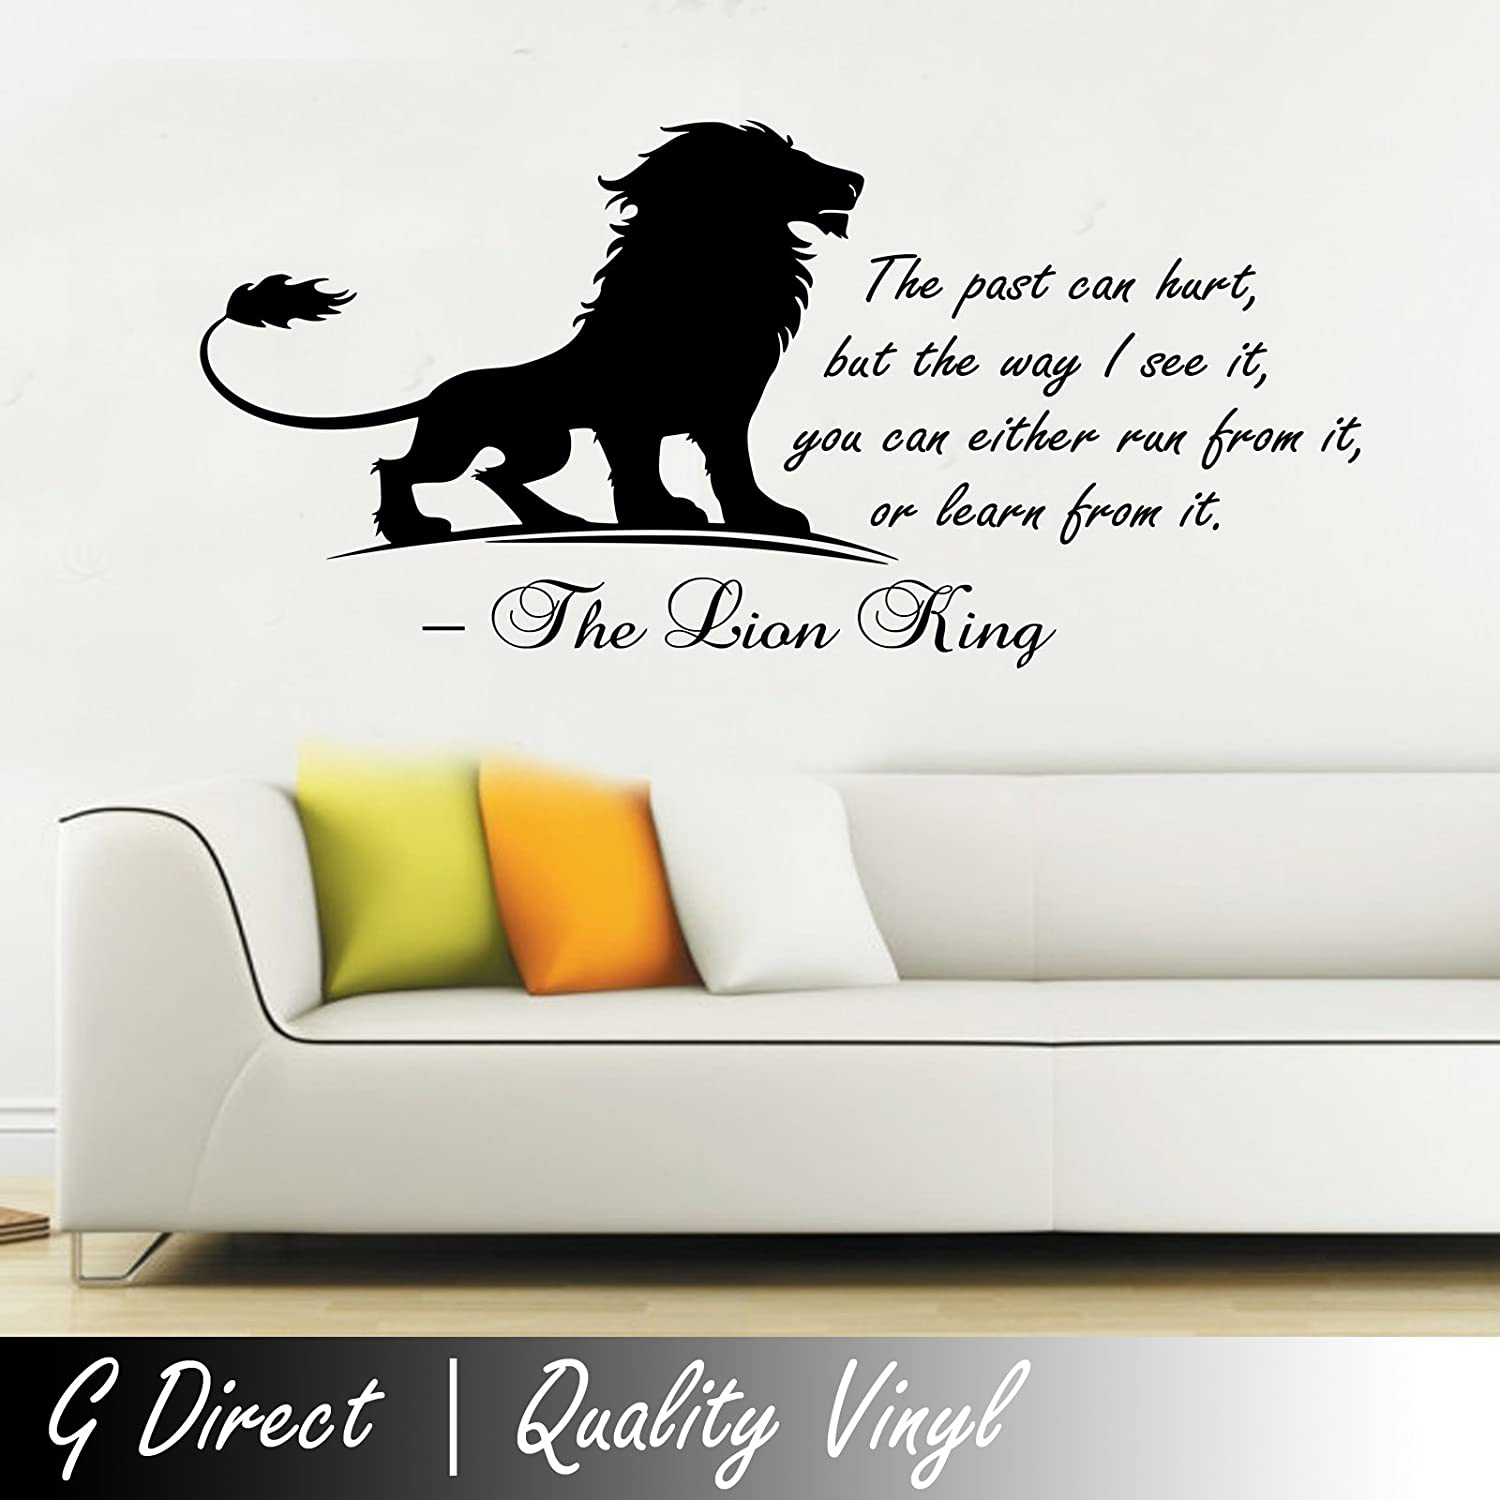 The lion king inspirational wall sticker quote kids bedroom the lion king inspirational wall sticker quote kids bedroom playroom home mural 100x55 amazon kitchen home amipublicfo Image collections